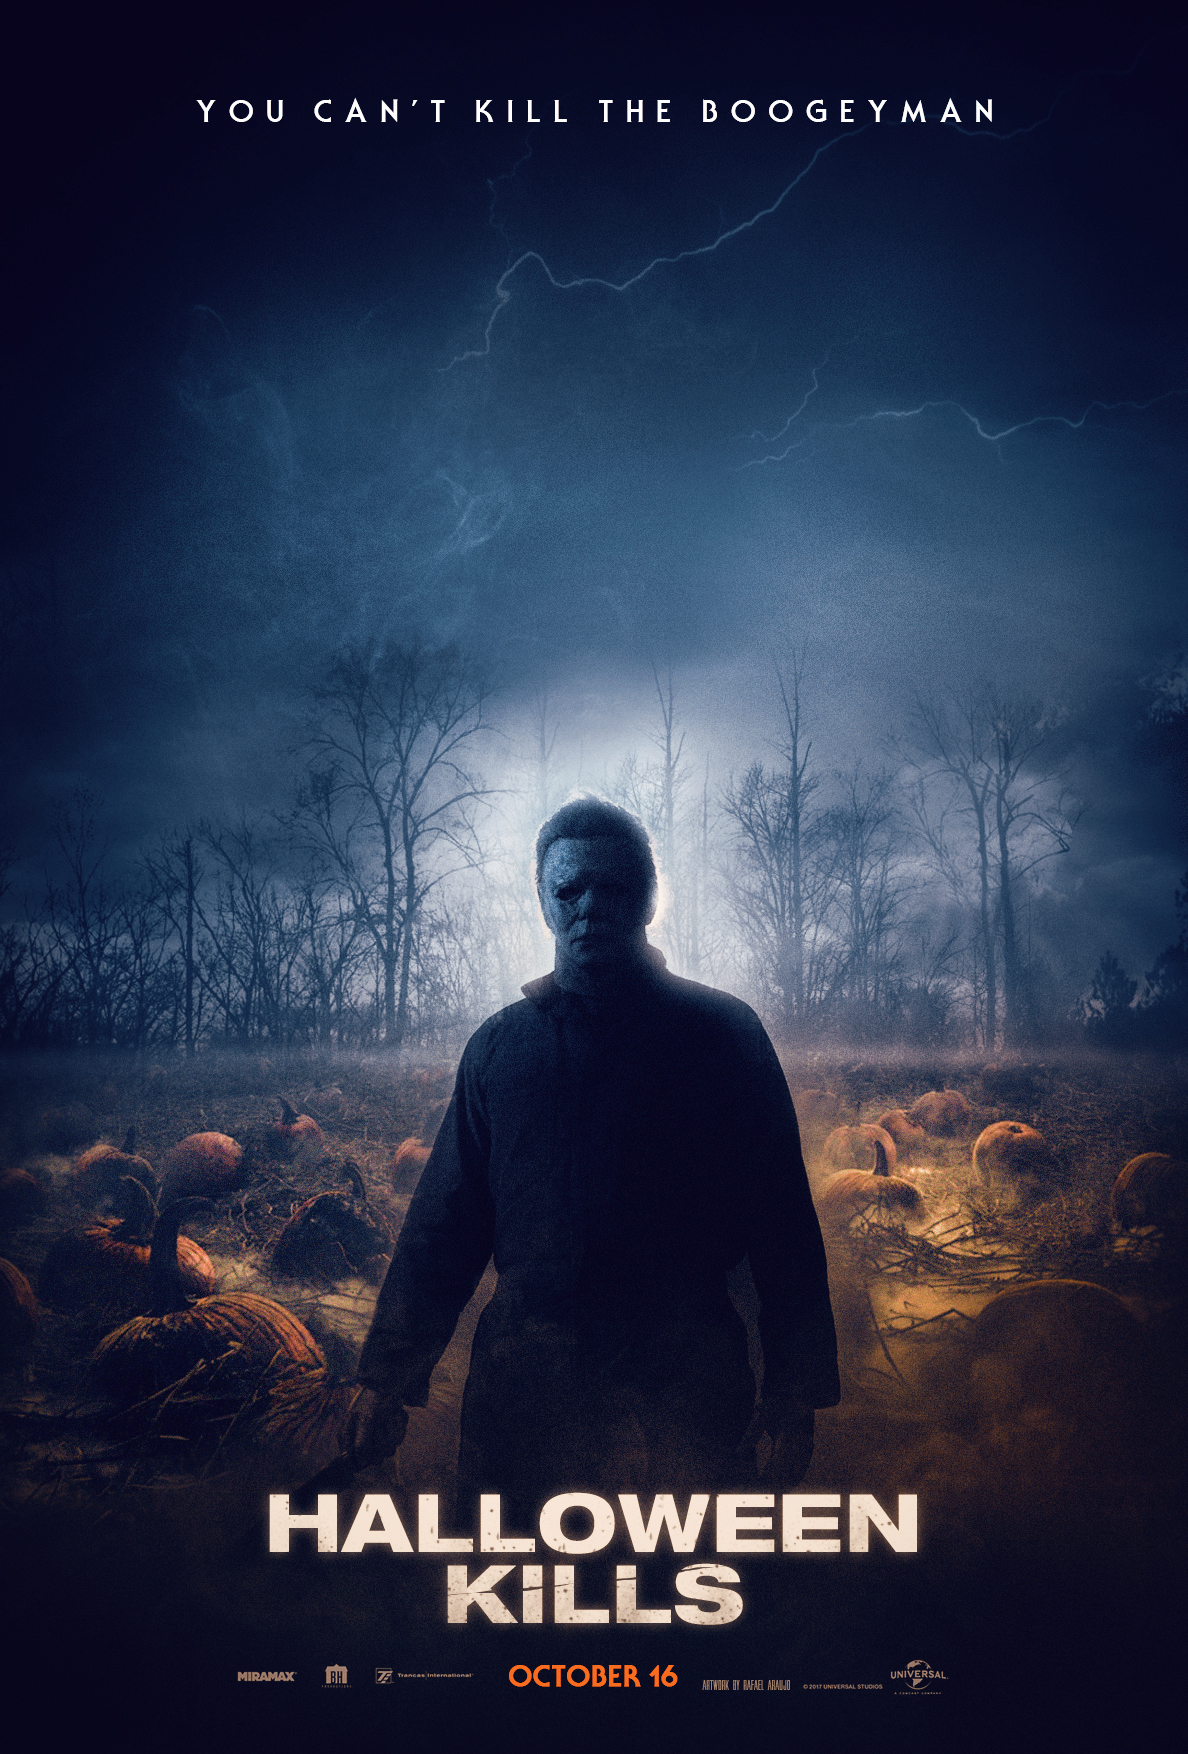 Halloween 2020 Teaster Poster Halloween Kills (2020) Teaser Poster #4 by amazing zuckonit on